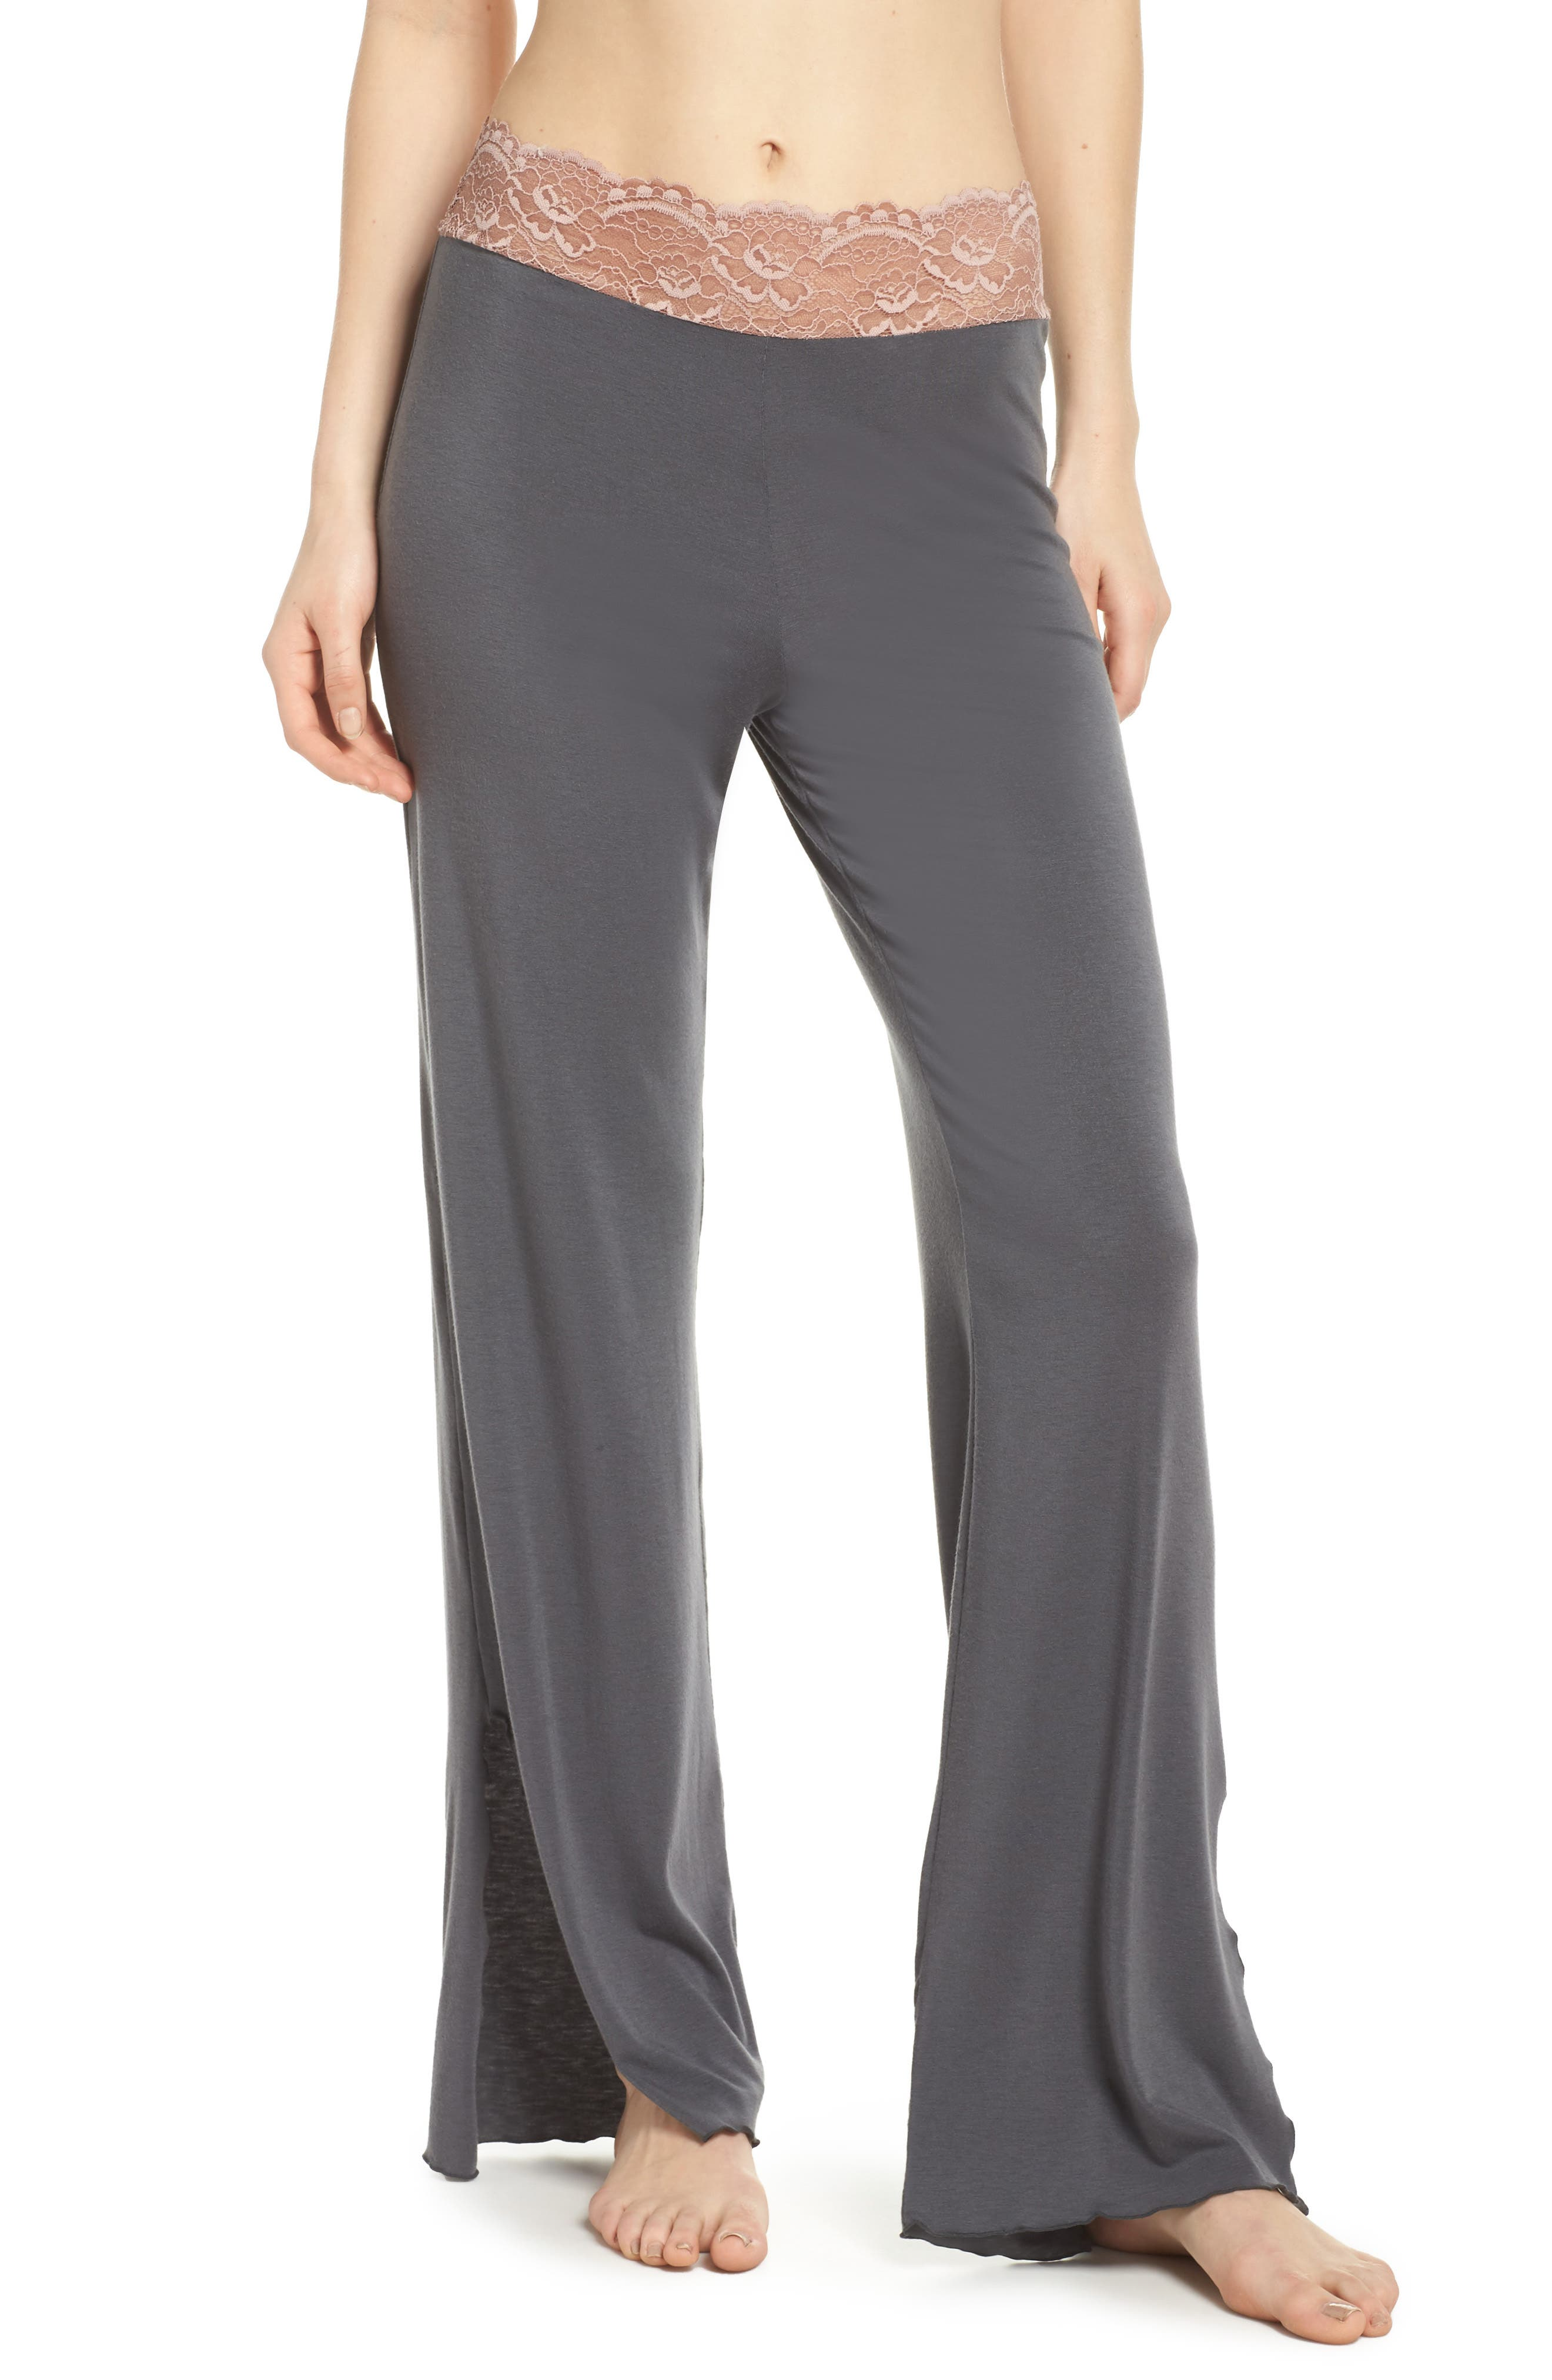 Lace Trim Pants,                             Main thumbnail 1, color,                             Slate With Java Lace